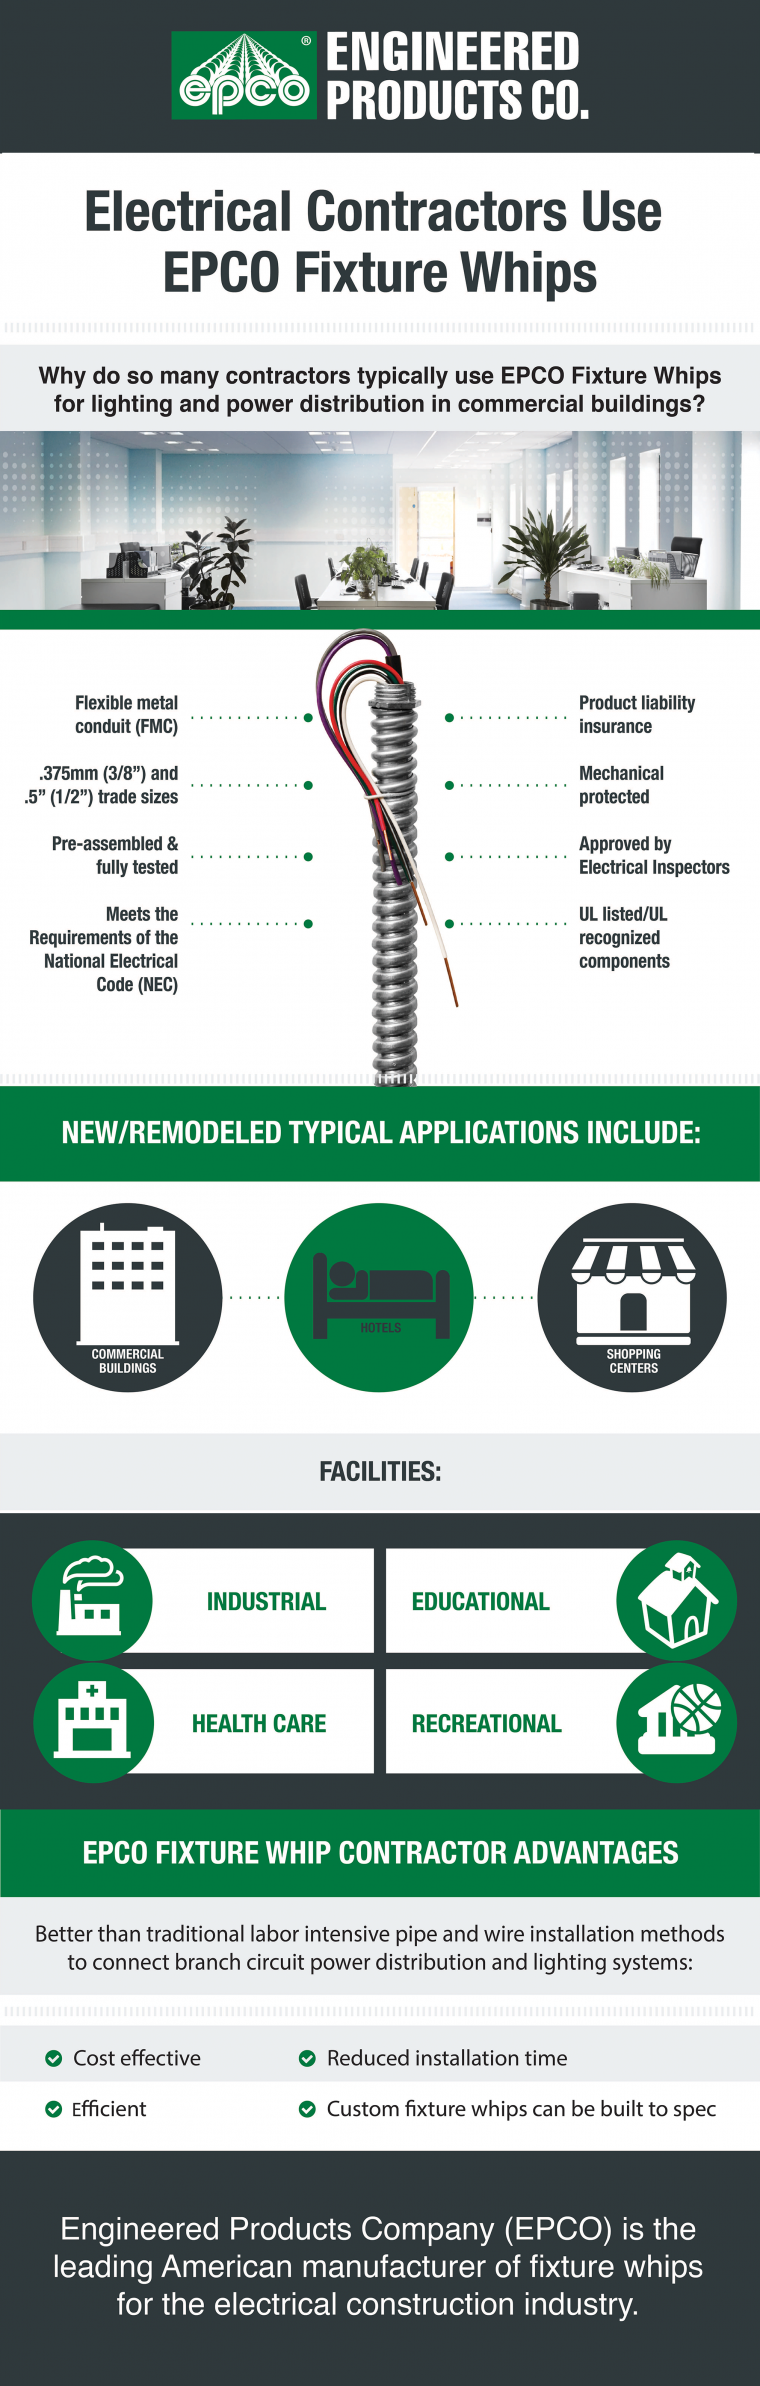 [INFOGRAPHIC] Why Do Contractors Use EPCO Fixture Whips?